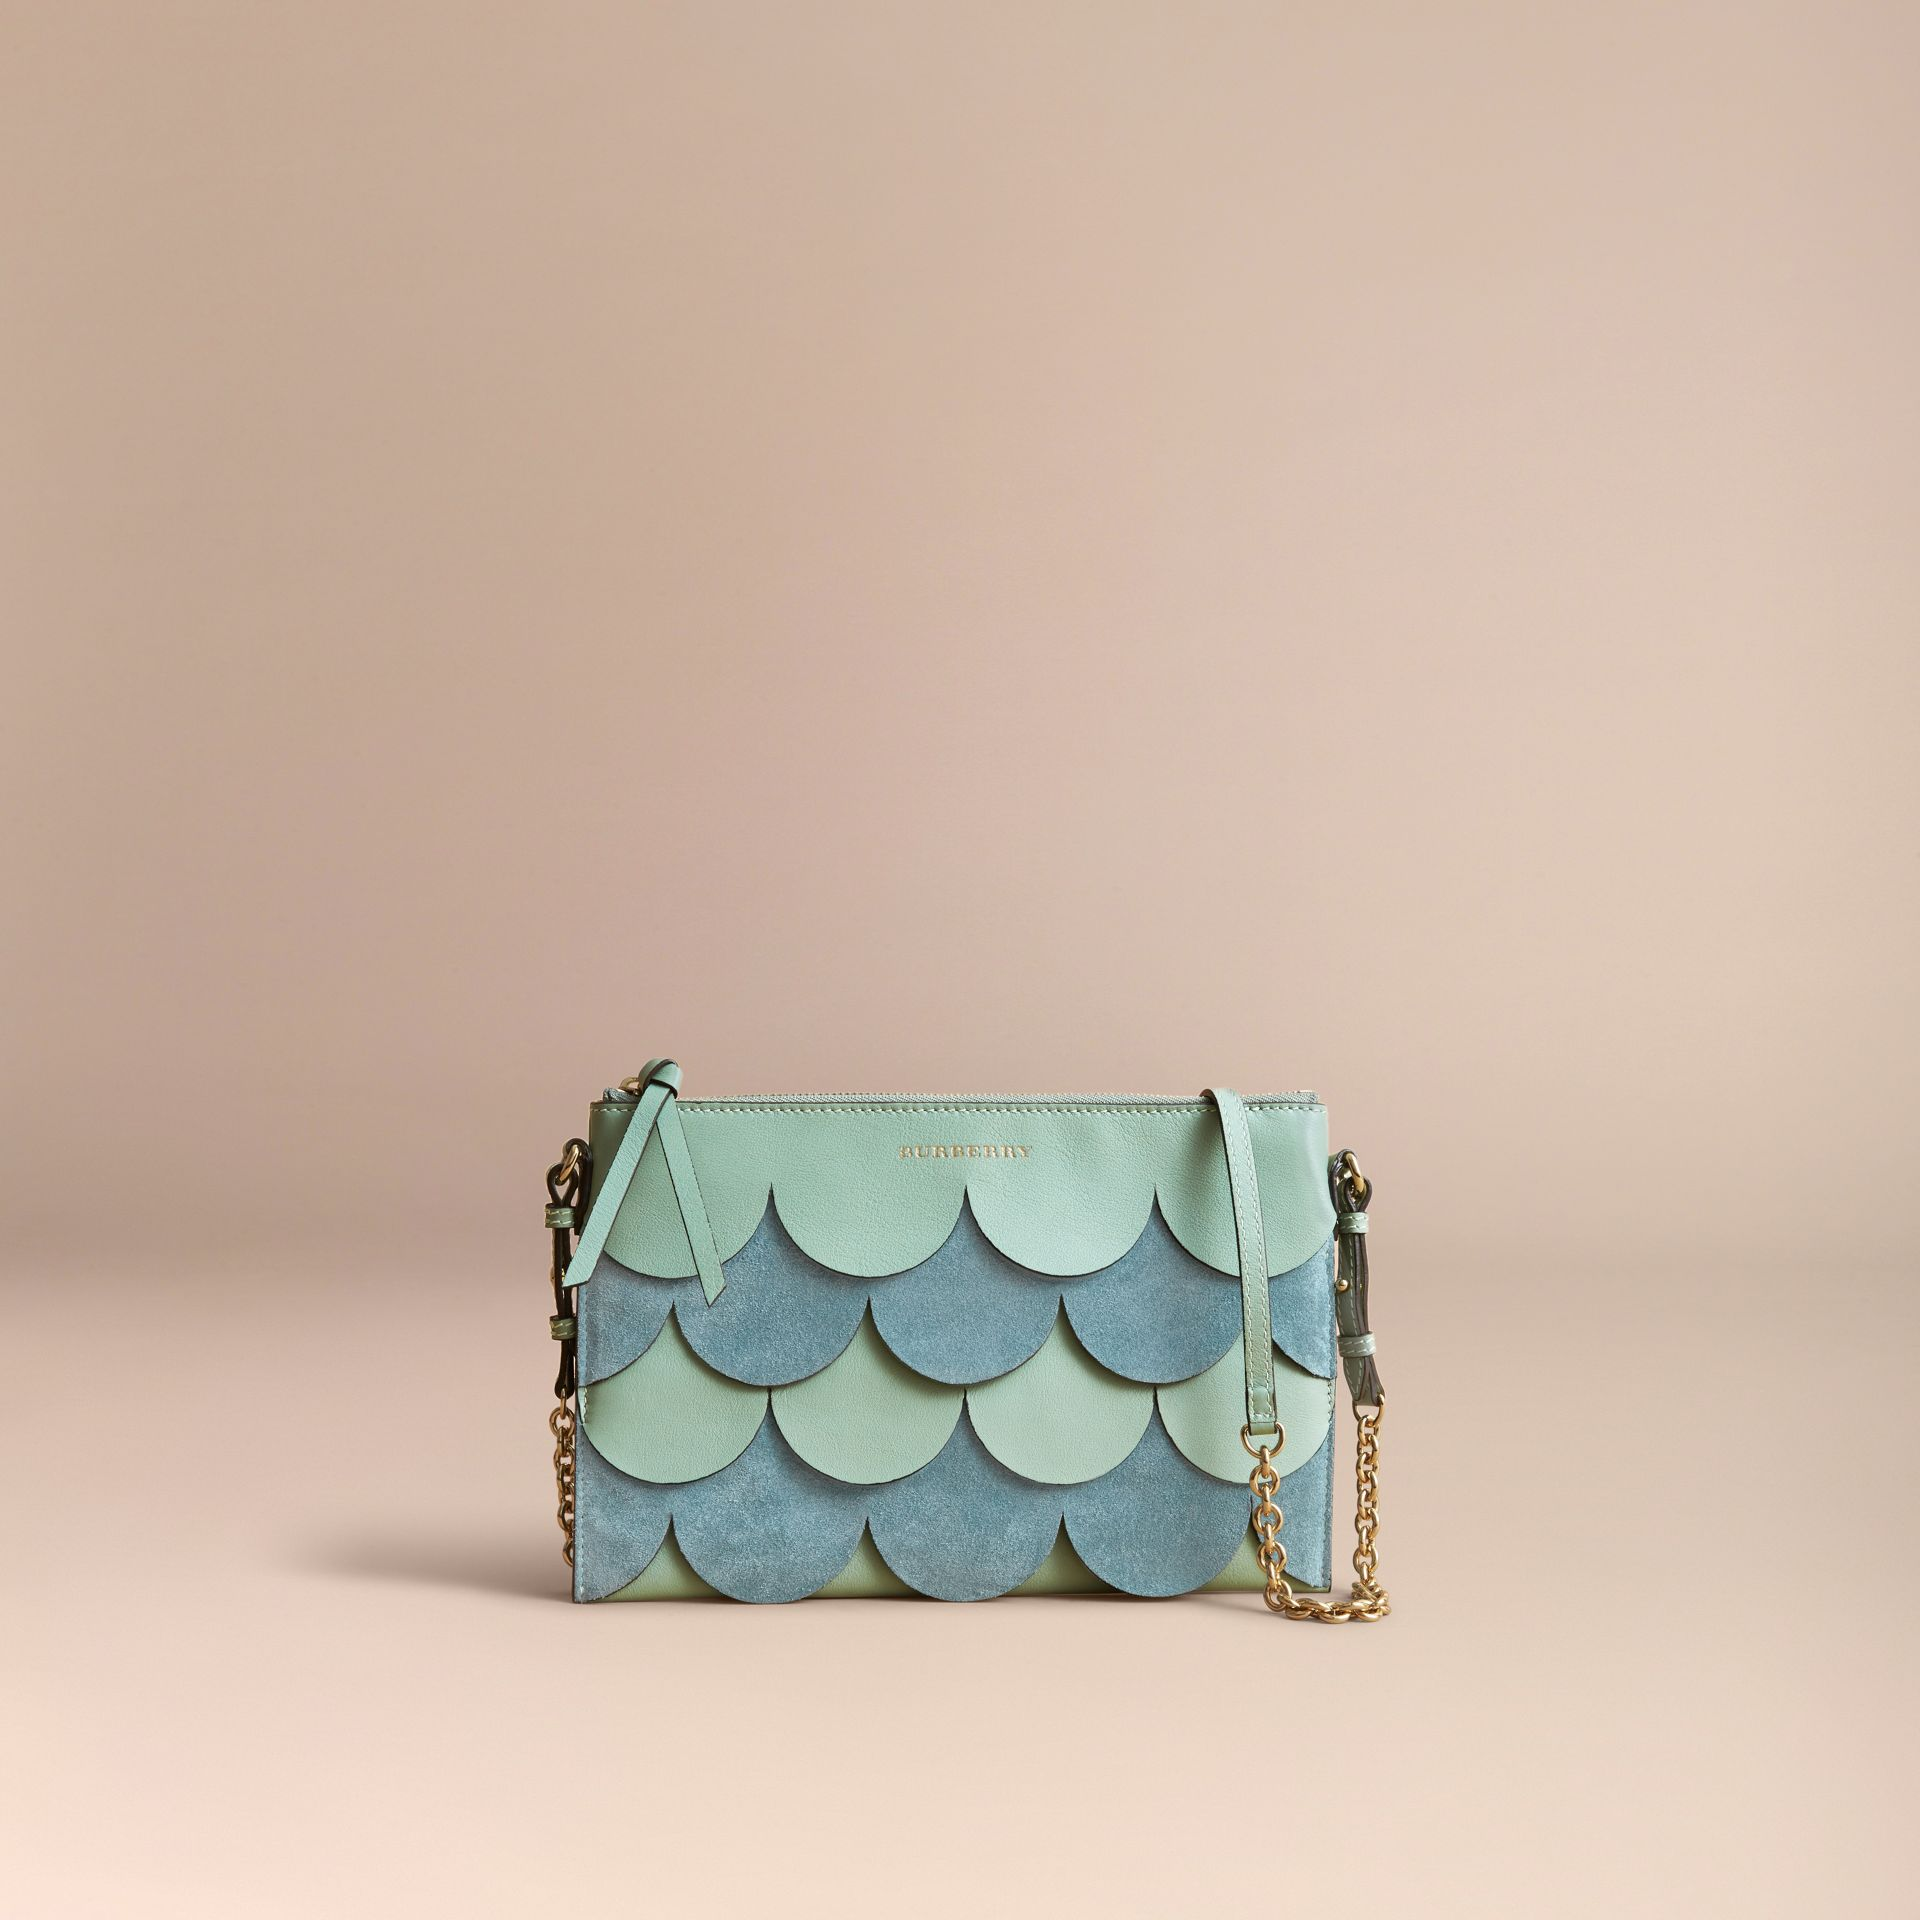 Two-tone Scalloped Leather and Suede Clutch Bag in Celadon Green - Women | Burberry - gallery image 8